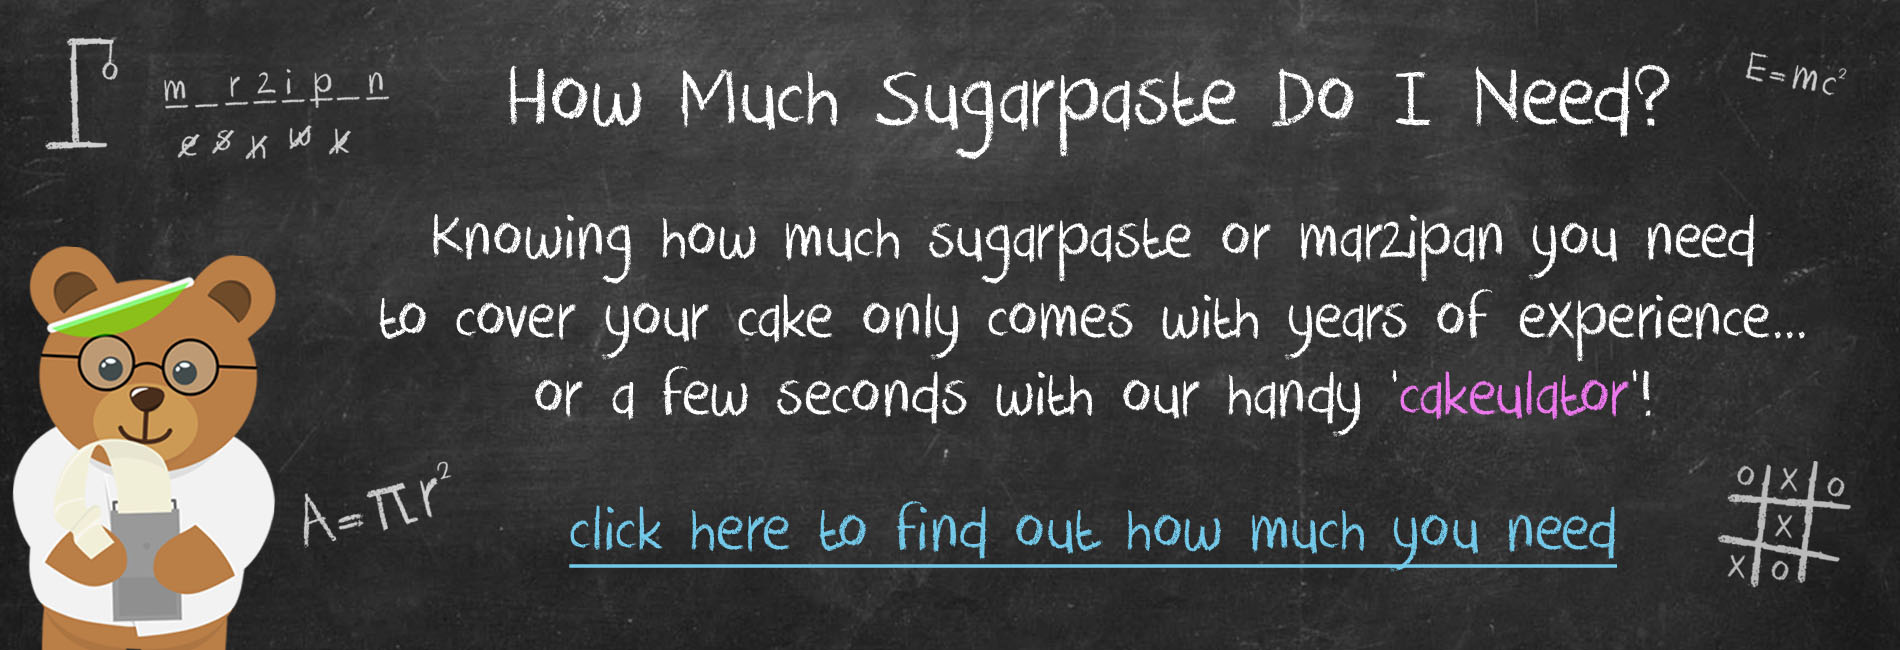 Find out how much sugarpaste you need to cover your cake